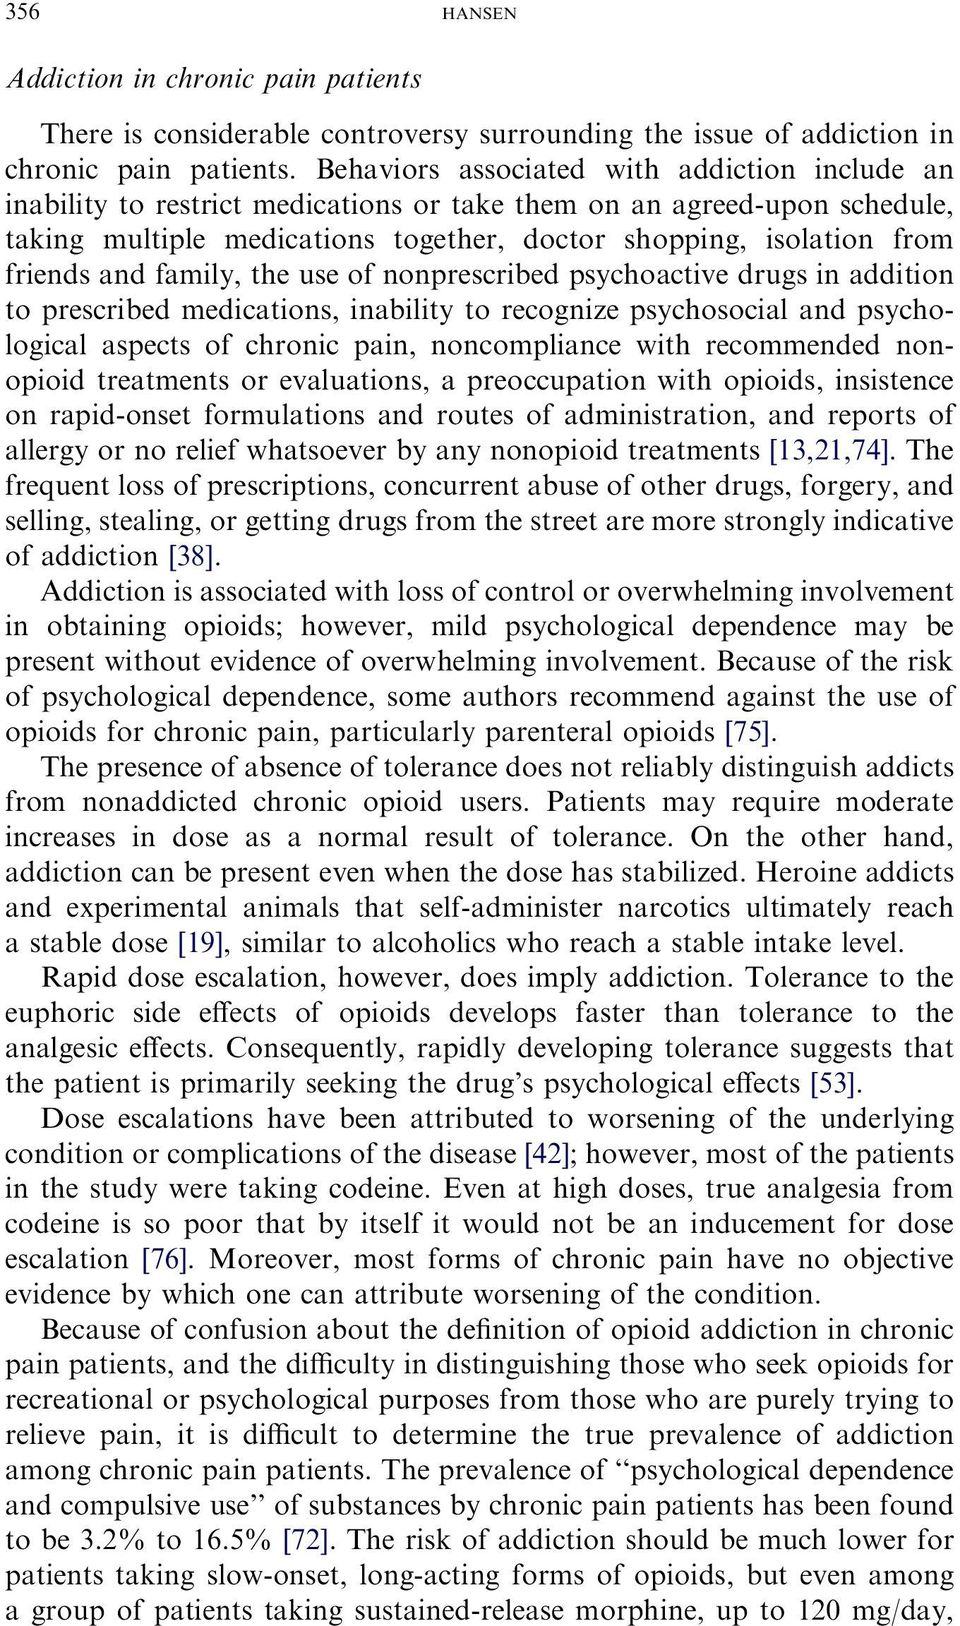 and family, the use of nonprescribed psychoactive drugs in addition to prescribed medications, inability to recognize psychosocial and psychological aspects of chronic pain, noncompliance with